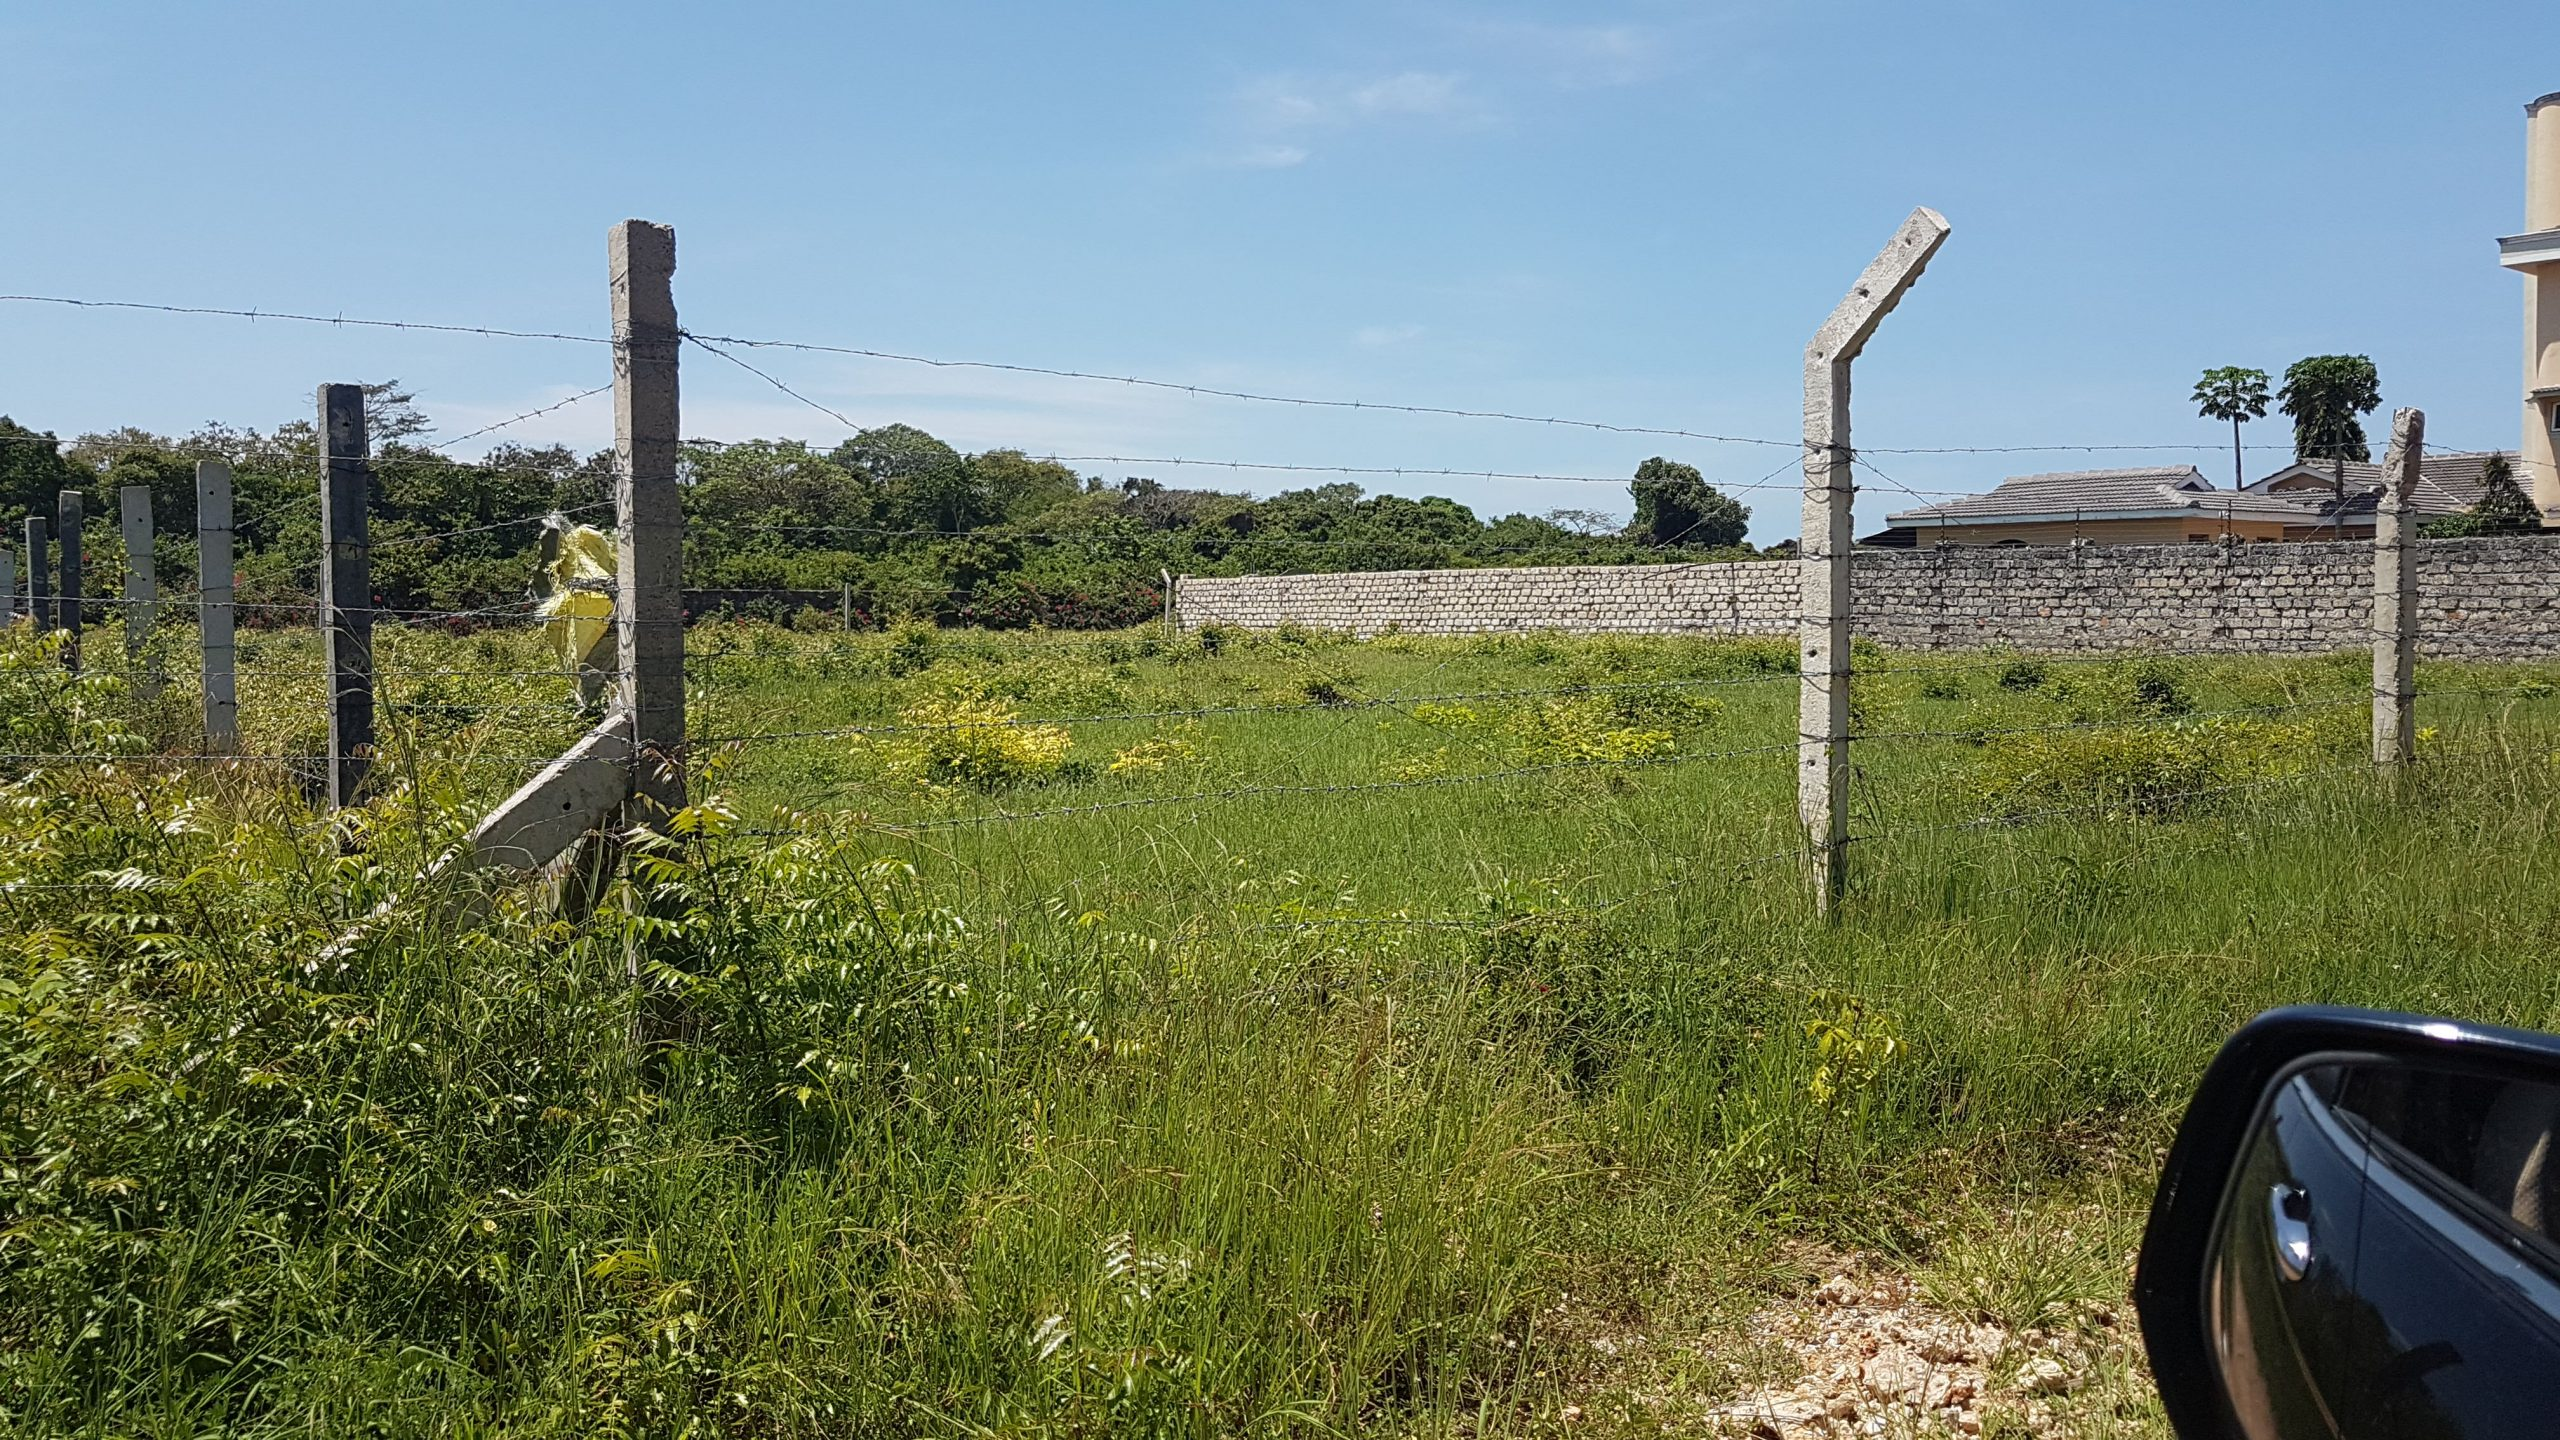 1/4 acre residential plot for sale in Shanzu